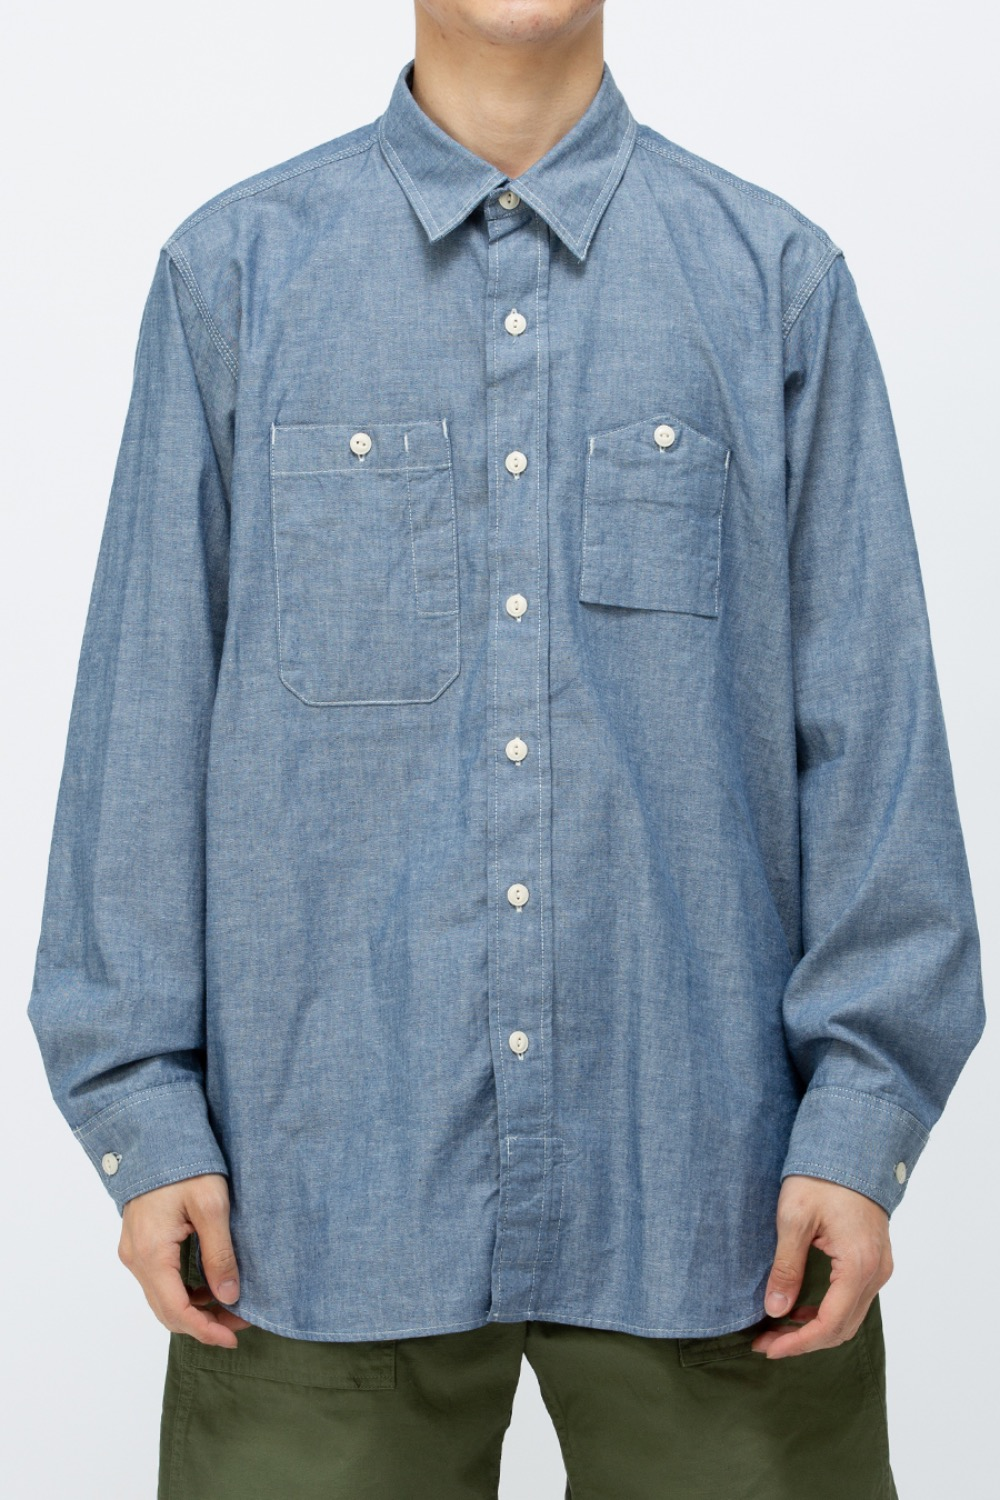 WORK SHIRT BLUE COTTON CHAMBRAY